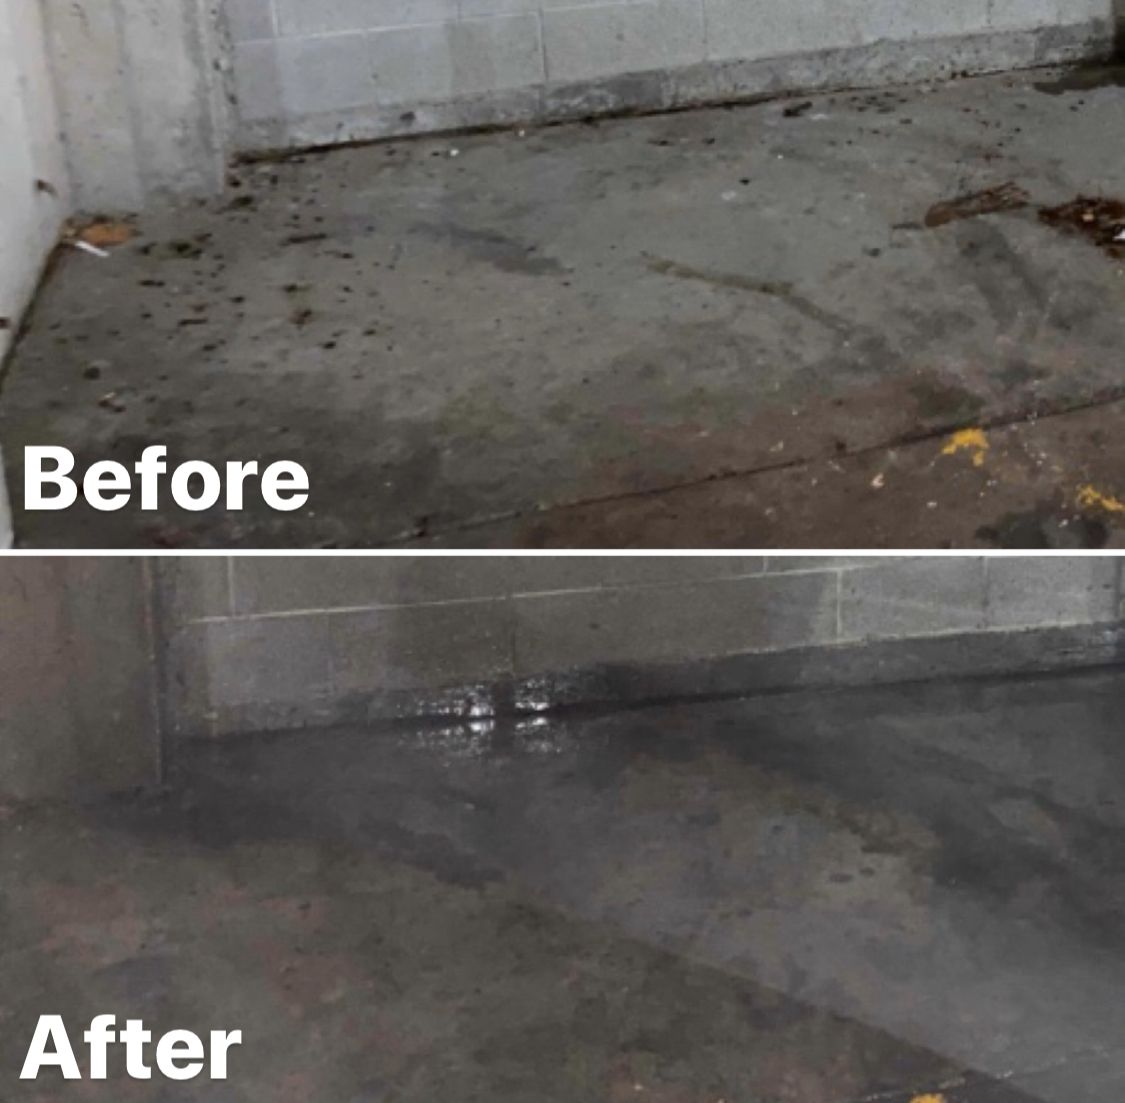 Dumpster cleaning Dumpster area before and after shot